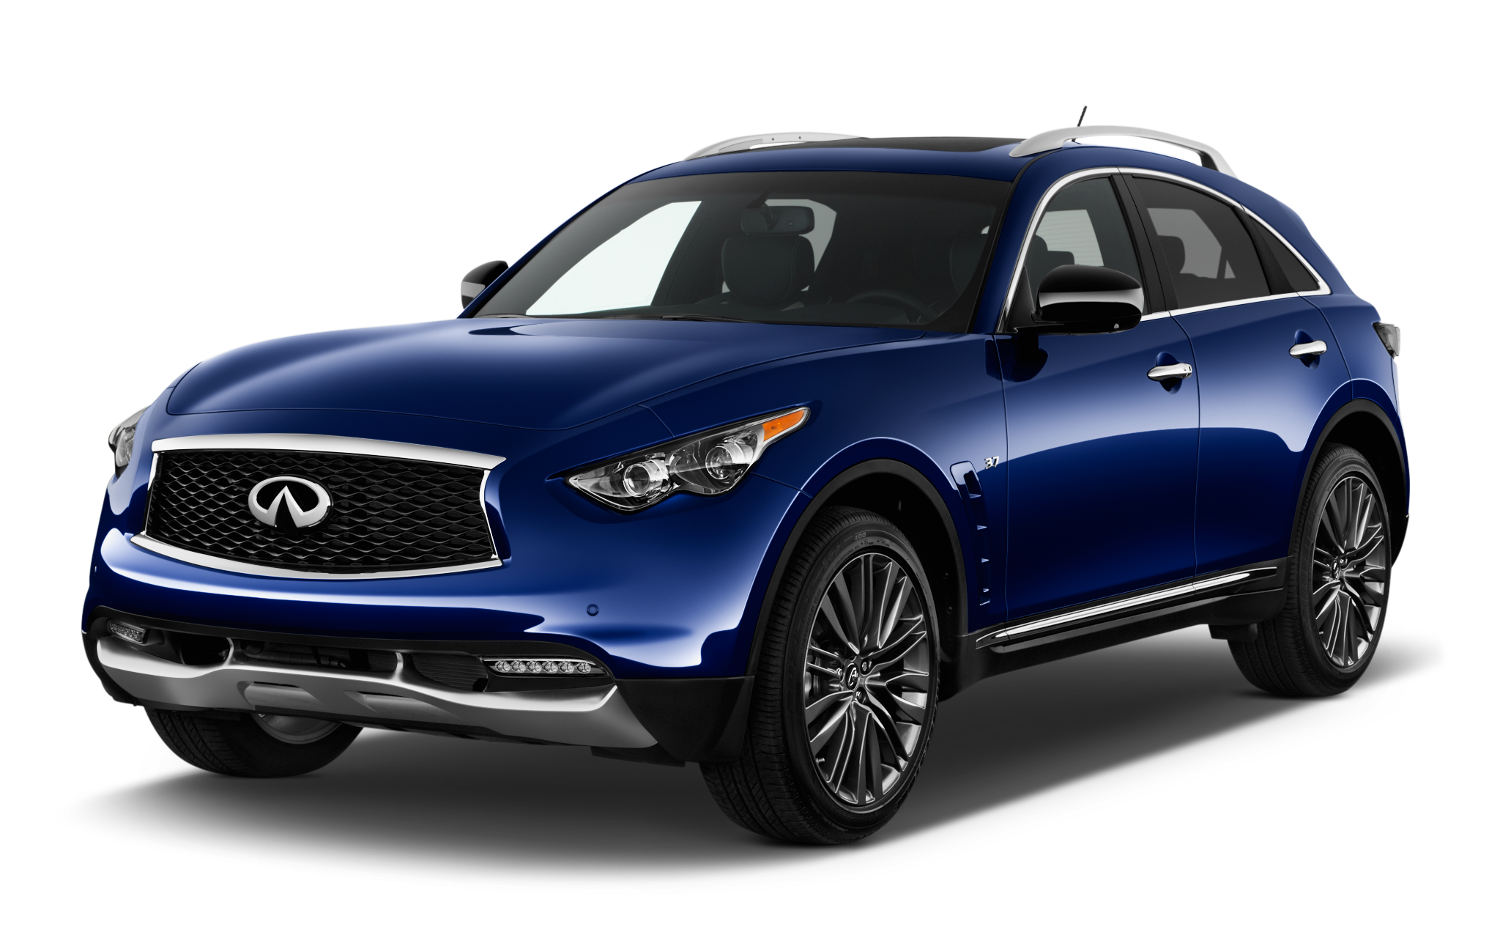 comparison infiniti qx70 base 2017 vs lincoln mkx suv 2015 suv drive. Black Bedroom Furniture Sets. Home Design Ideas